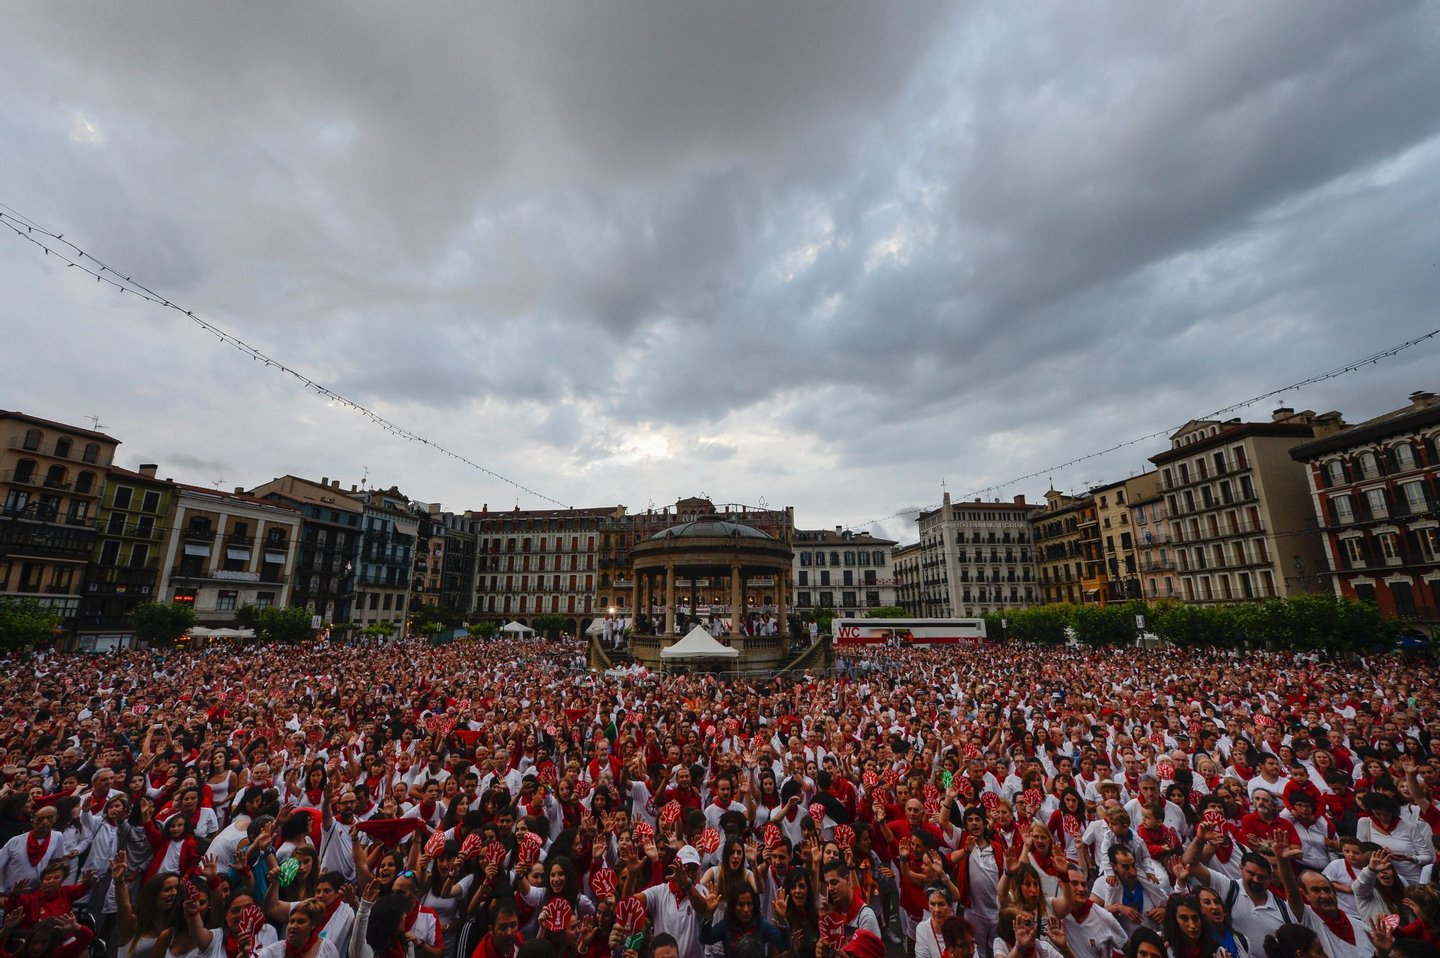 Thousands of people protest against the growing number of sexual assaults during the San Fermin bull run festival in Pamplona, northern Spain on July 11, 2016. Police said on July 7, 2016 they have made five arrests after a woman said she had been sexually assaulted overnight. / AFP / MIGUEL RIOPA (Photo credit should read MIGUEL RIOPA/AFP/Getty Images)